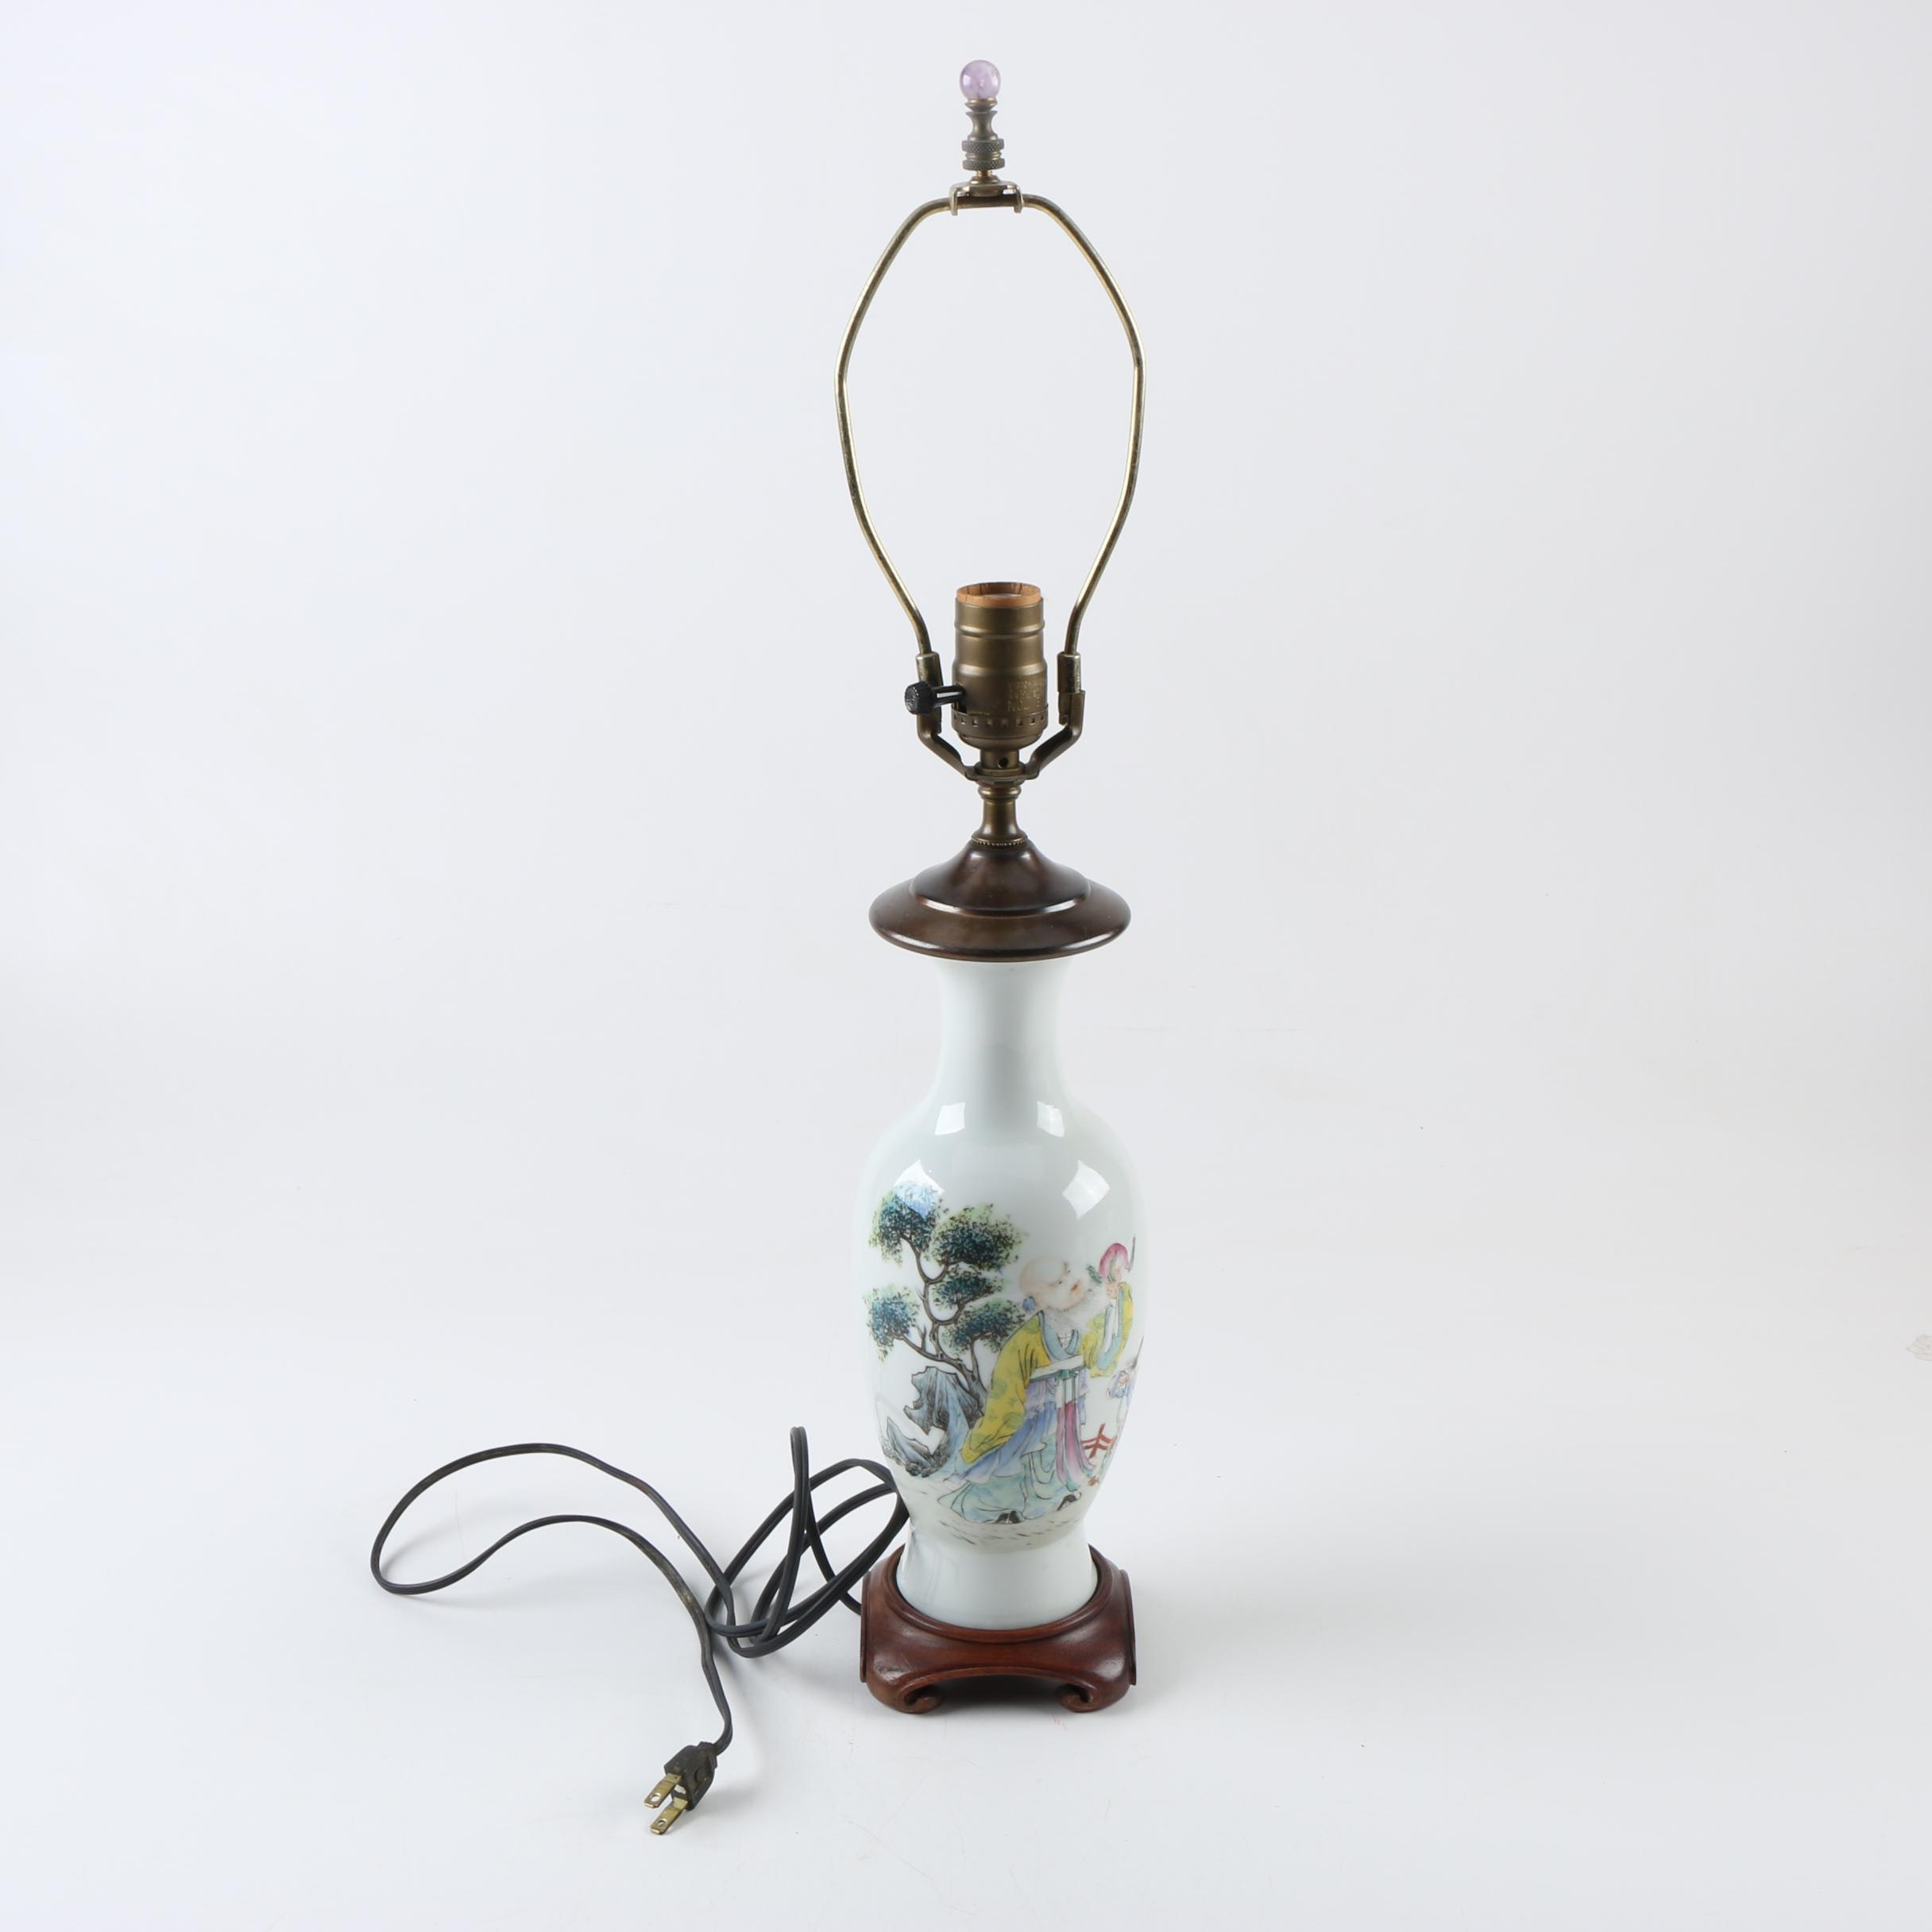 Chinese Ceramic Table Lamp